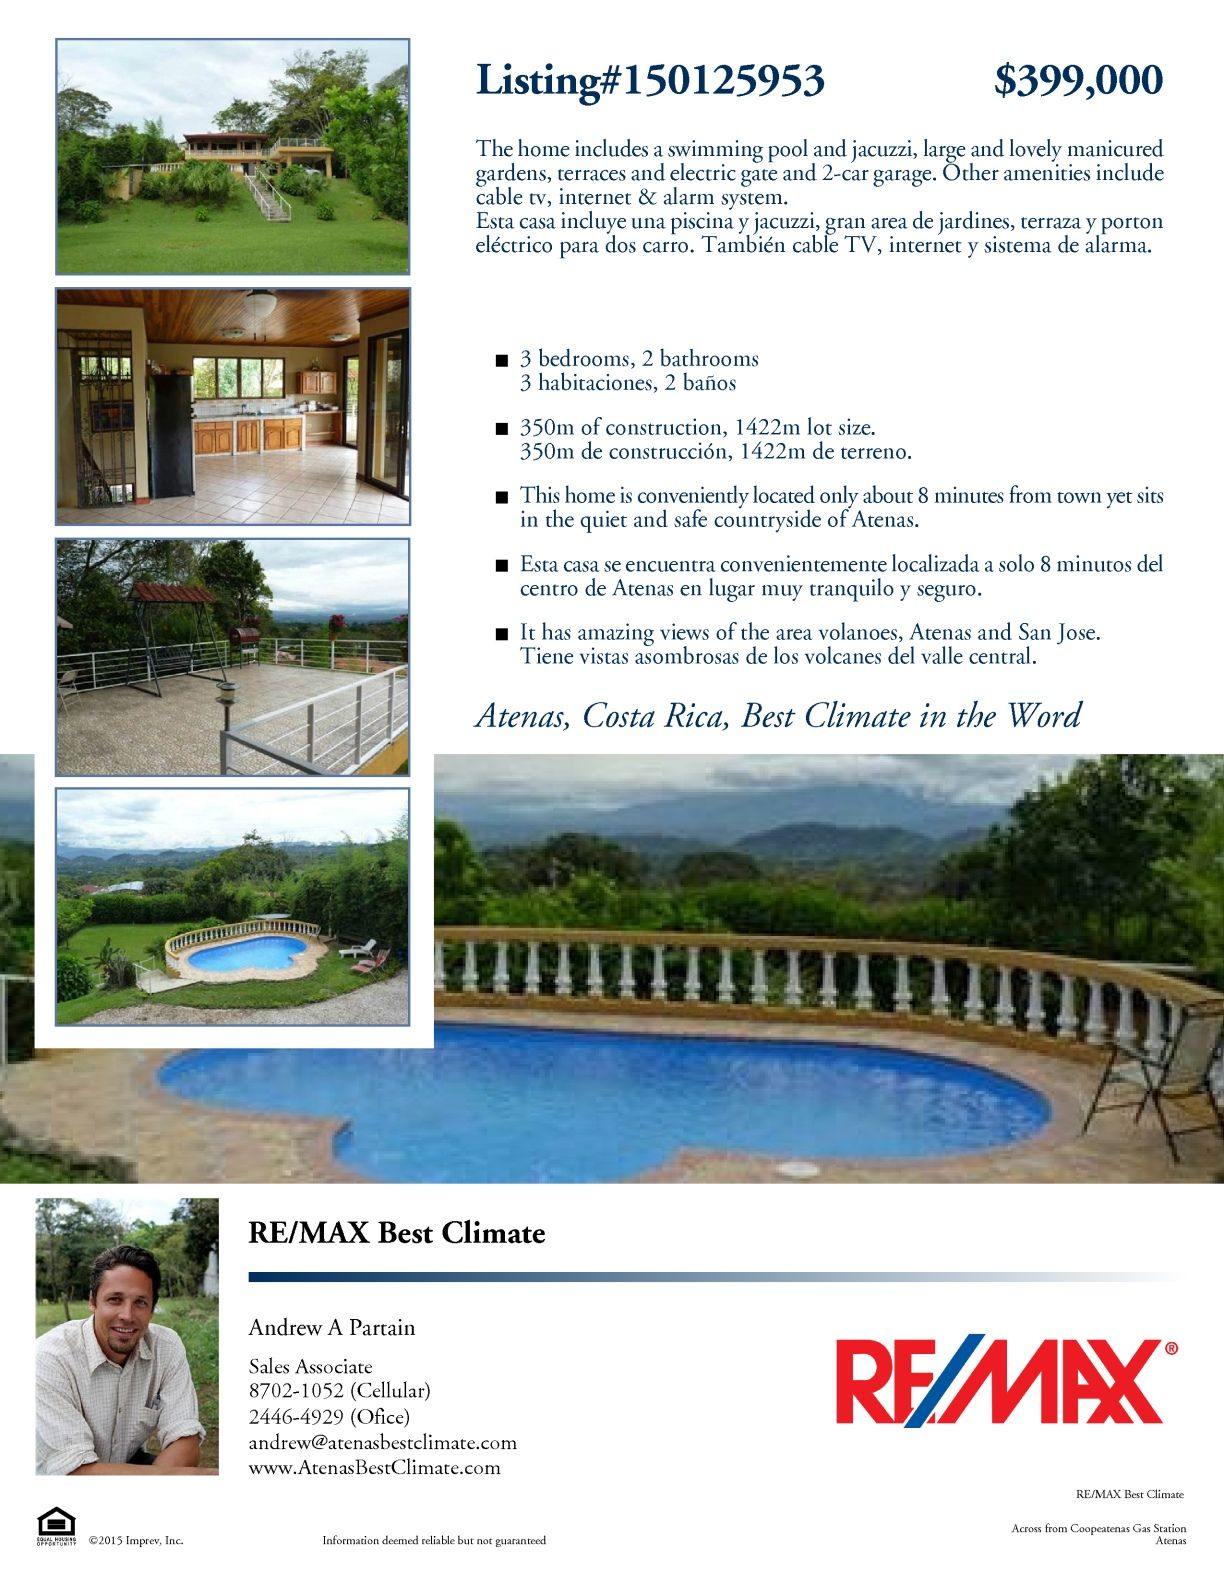 Home for sale in Atenas! Swimming pools, Pool, Jacuzzi